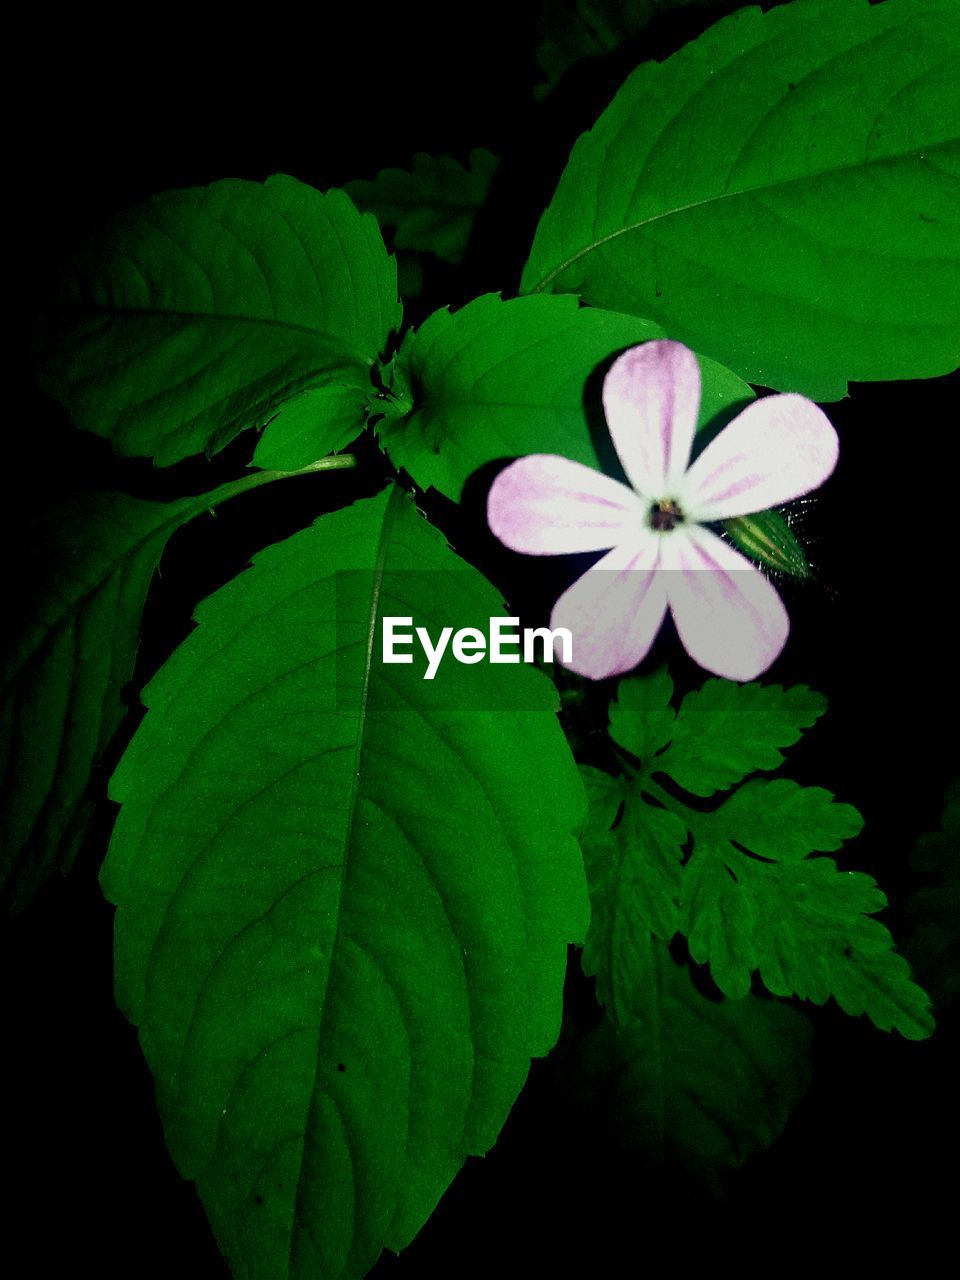 plant part, leaf, plant, freshness, flower, growth, beauty in nature, close-up, flowering plant, fragility, vulnerability, petal, green color, nature, flower head, inflorescence, night, no people, outdoors, pink color, black background, leaves